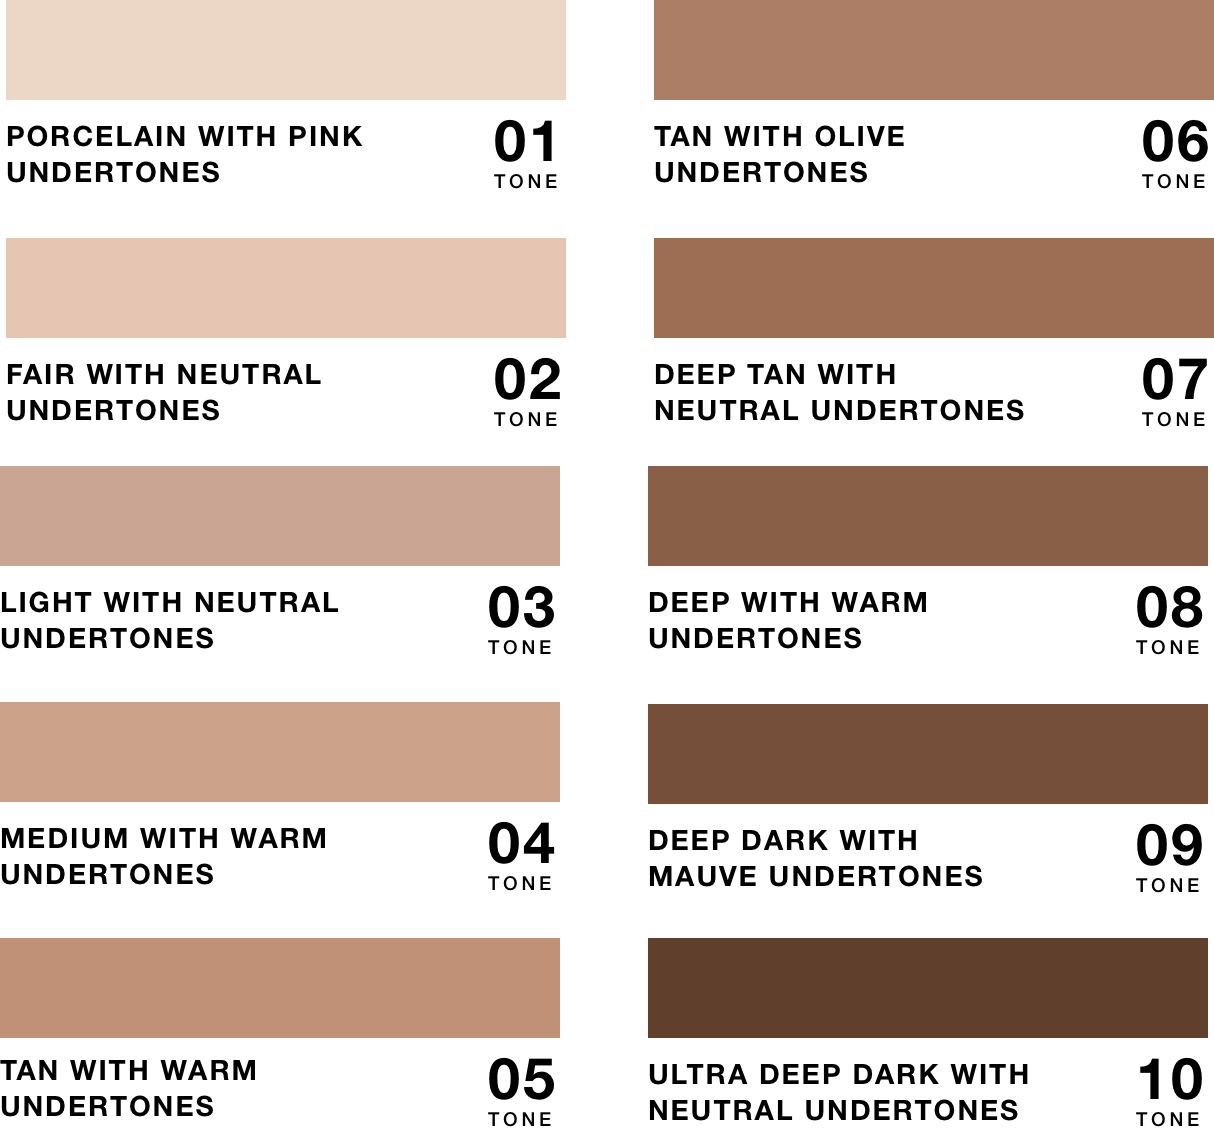 swatch-cards.png